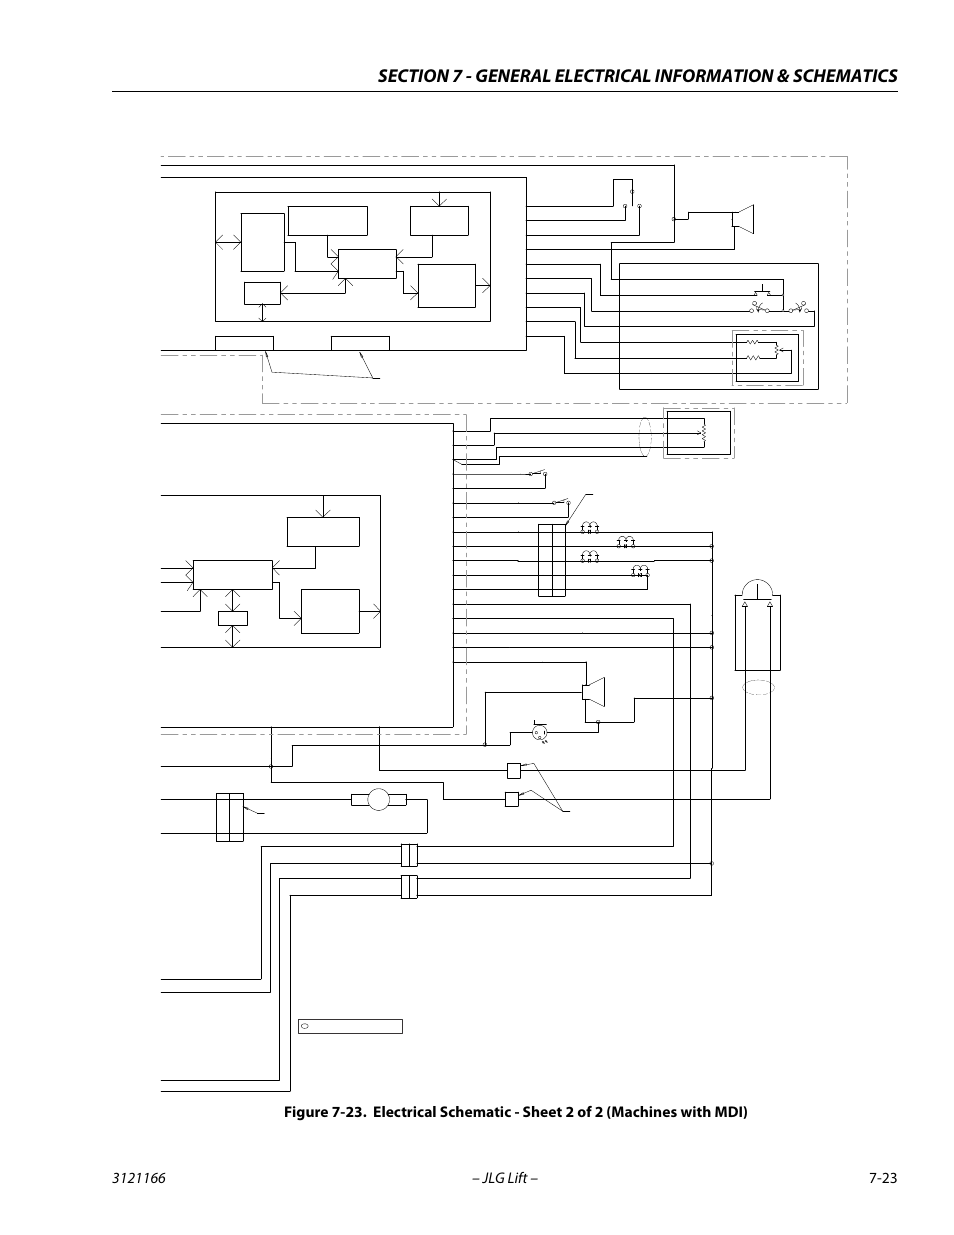 Jlg 40e Battery Wiring Diagram House Wiring Diagram Symbols Source ·  joystick jlg 3246es service manual user manual page 199 222 rh manuair com  Heavy Duty ...